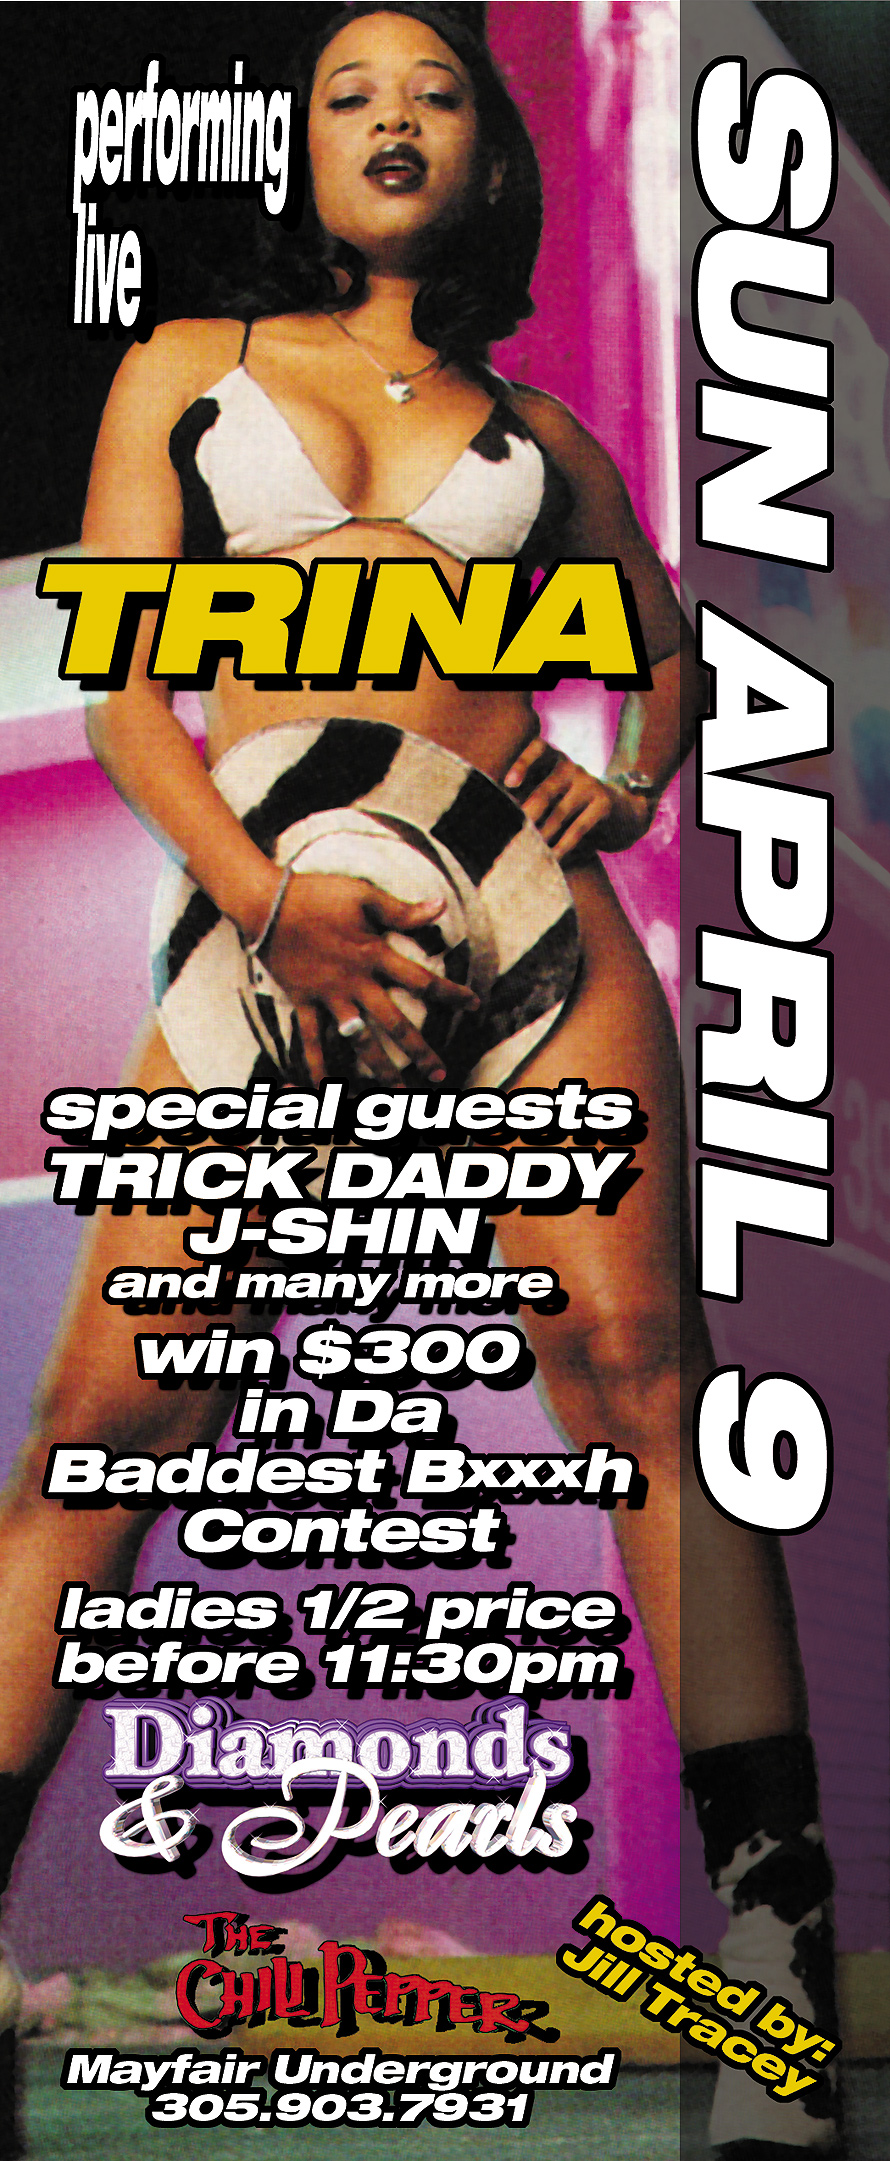 Trina Performing Live at The Chili Pepper and Black Rob at Rascals